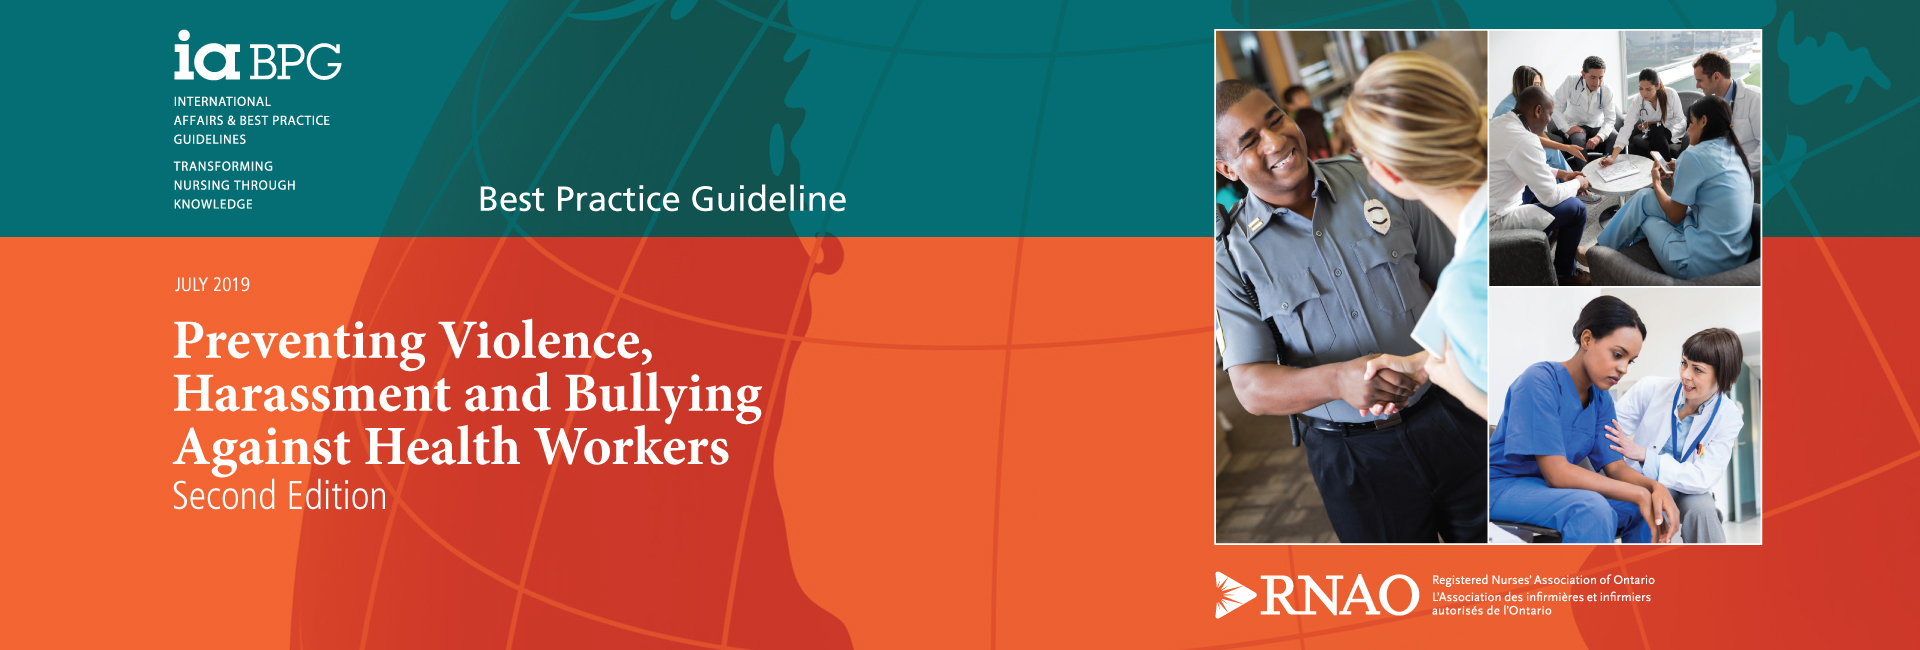 Preventing Violence, Harassment and Bullying Against Health Workers